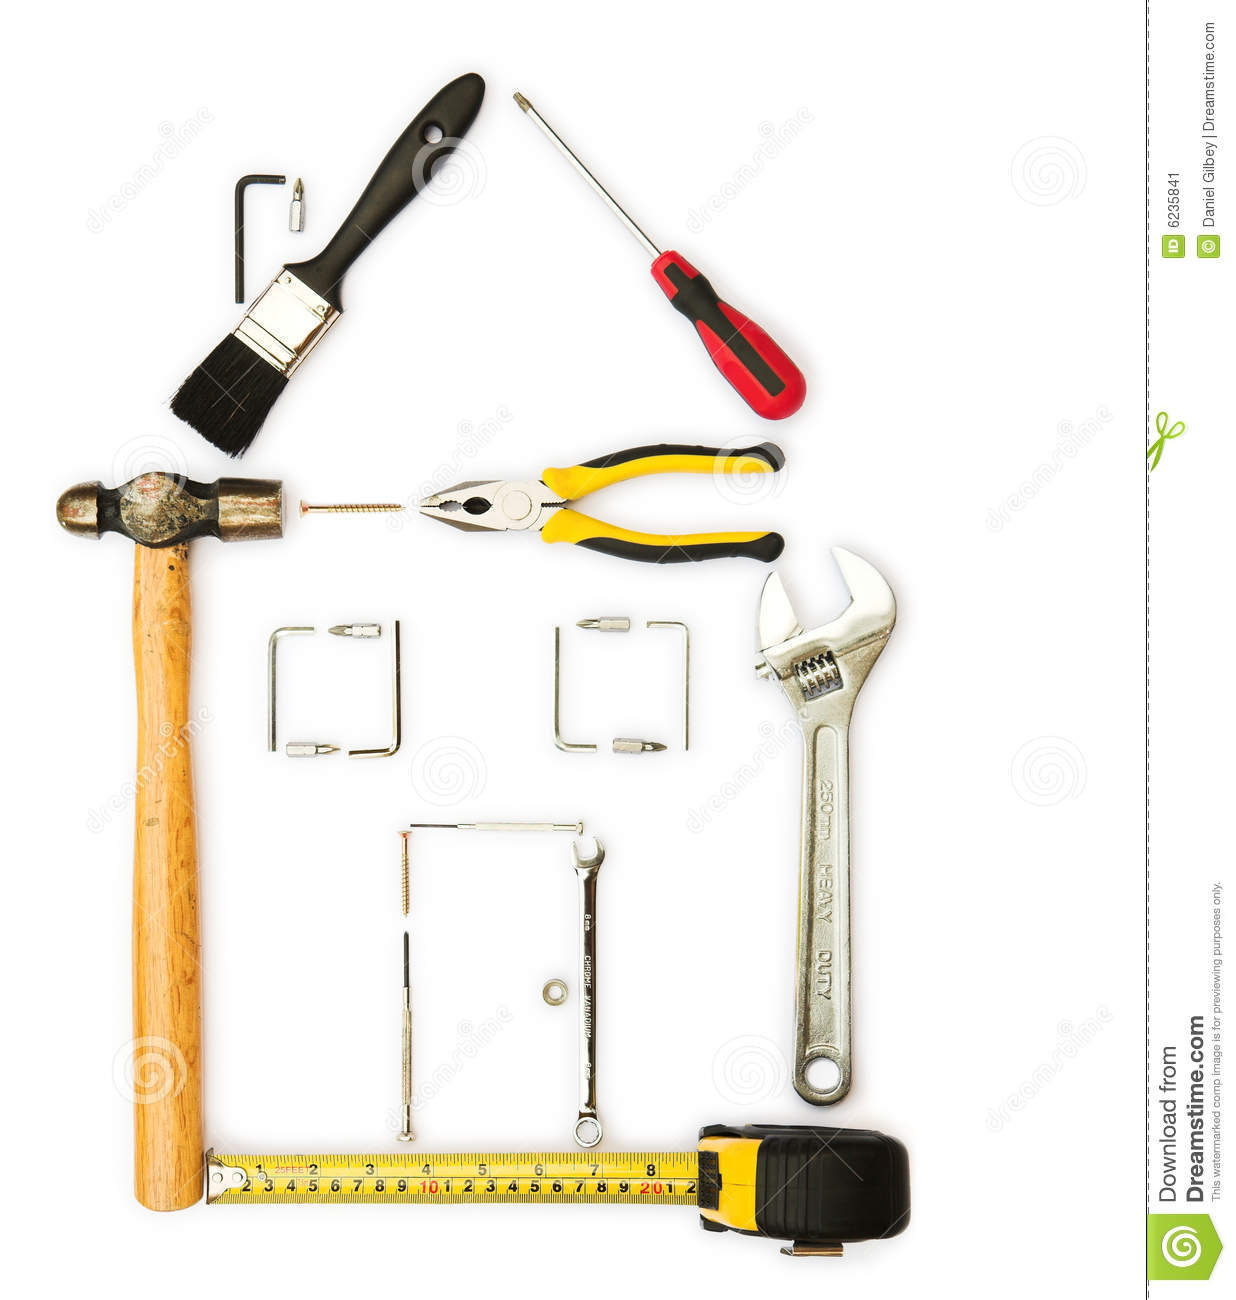 Home improvement tools clipart for House remodeling tools